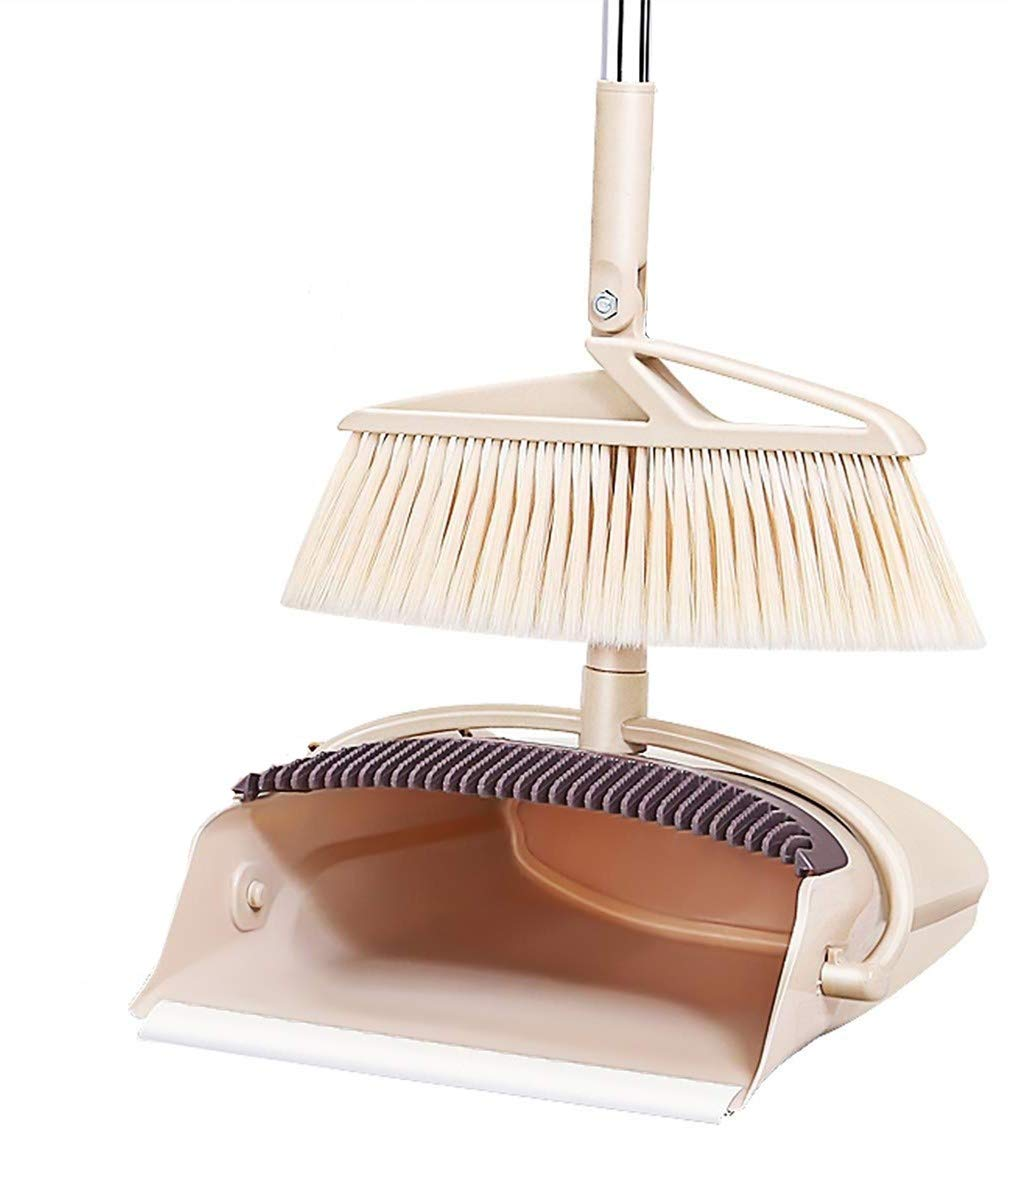 Foldable Broom and Dustpan Set Combo Artifact Standing Upright,180 Degree Rotation,Home or Office Sweep by CLEVER BEAR